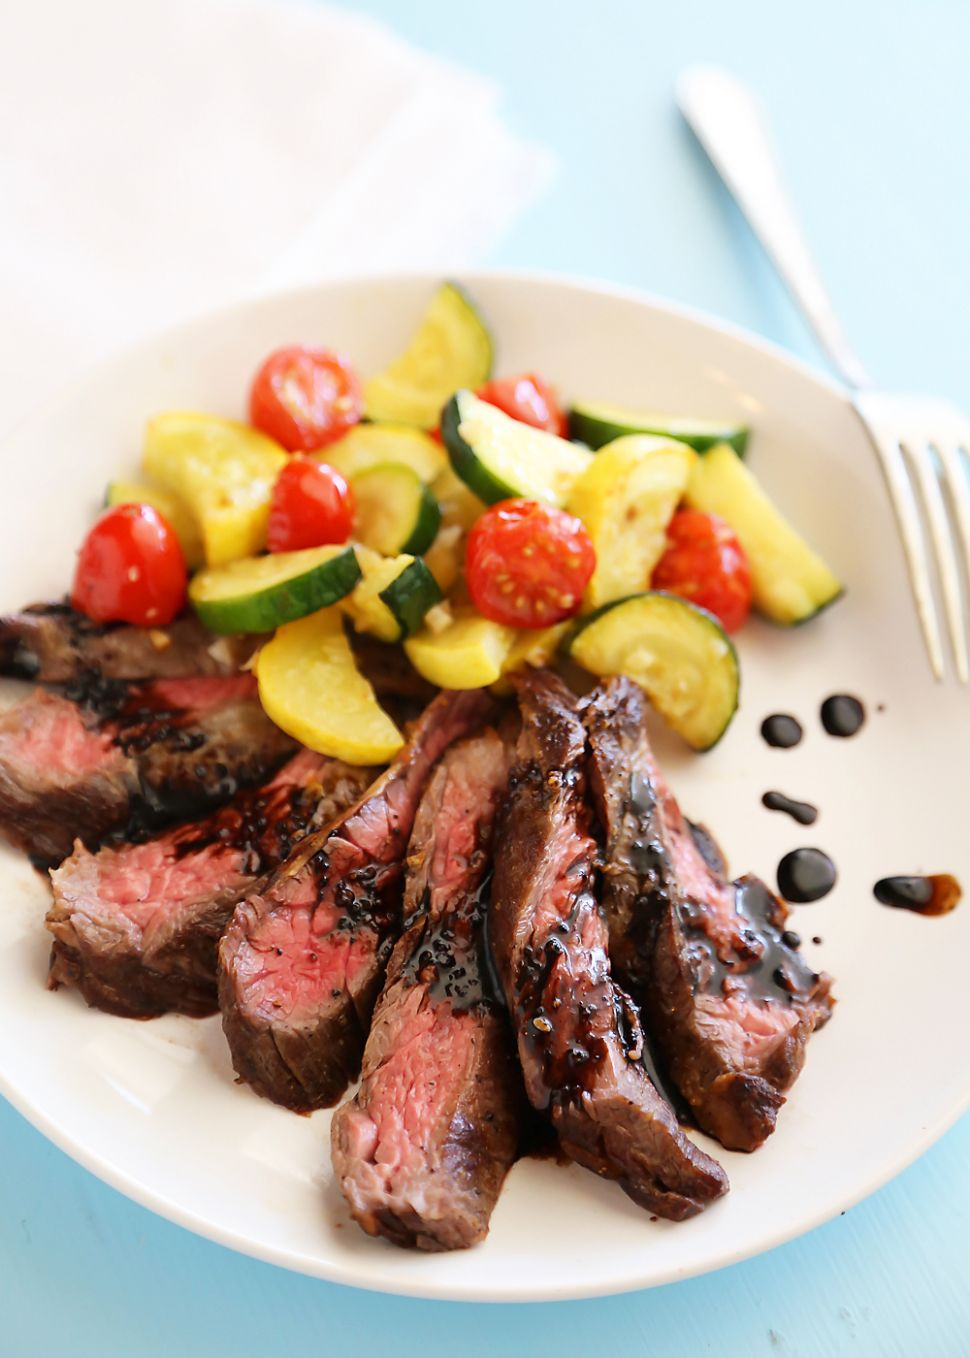 Skillet Balsamic Skirt Steak with Garlic Zucchini, Squash and Tomatoes - Dinner Recipes With Zucchini And Squash